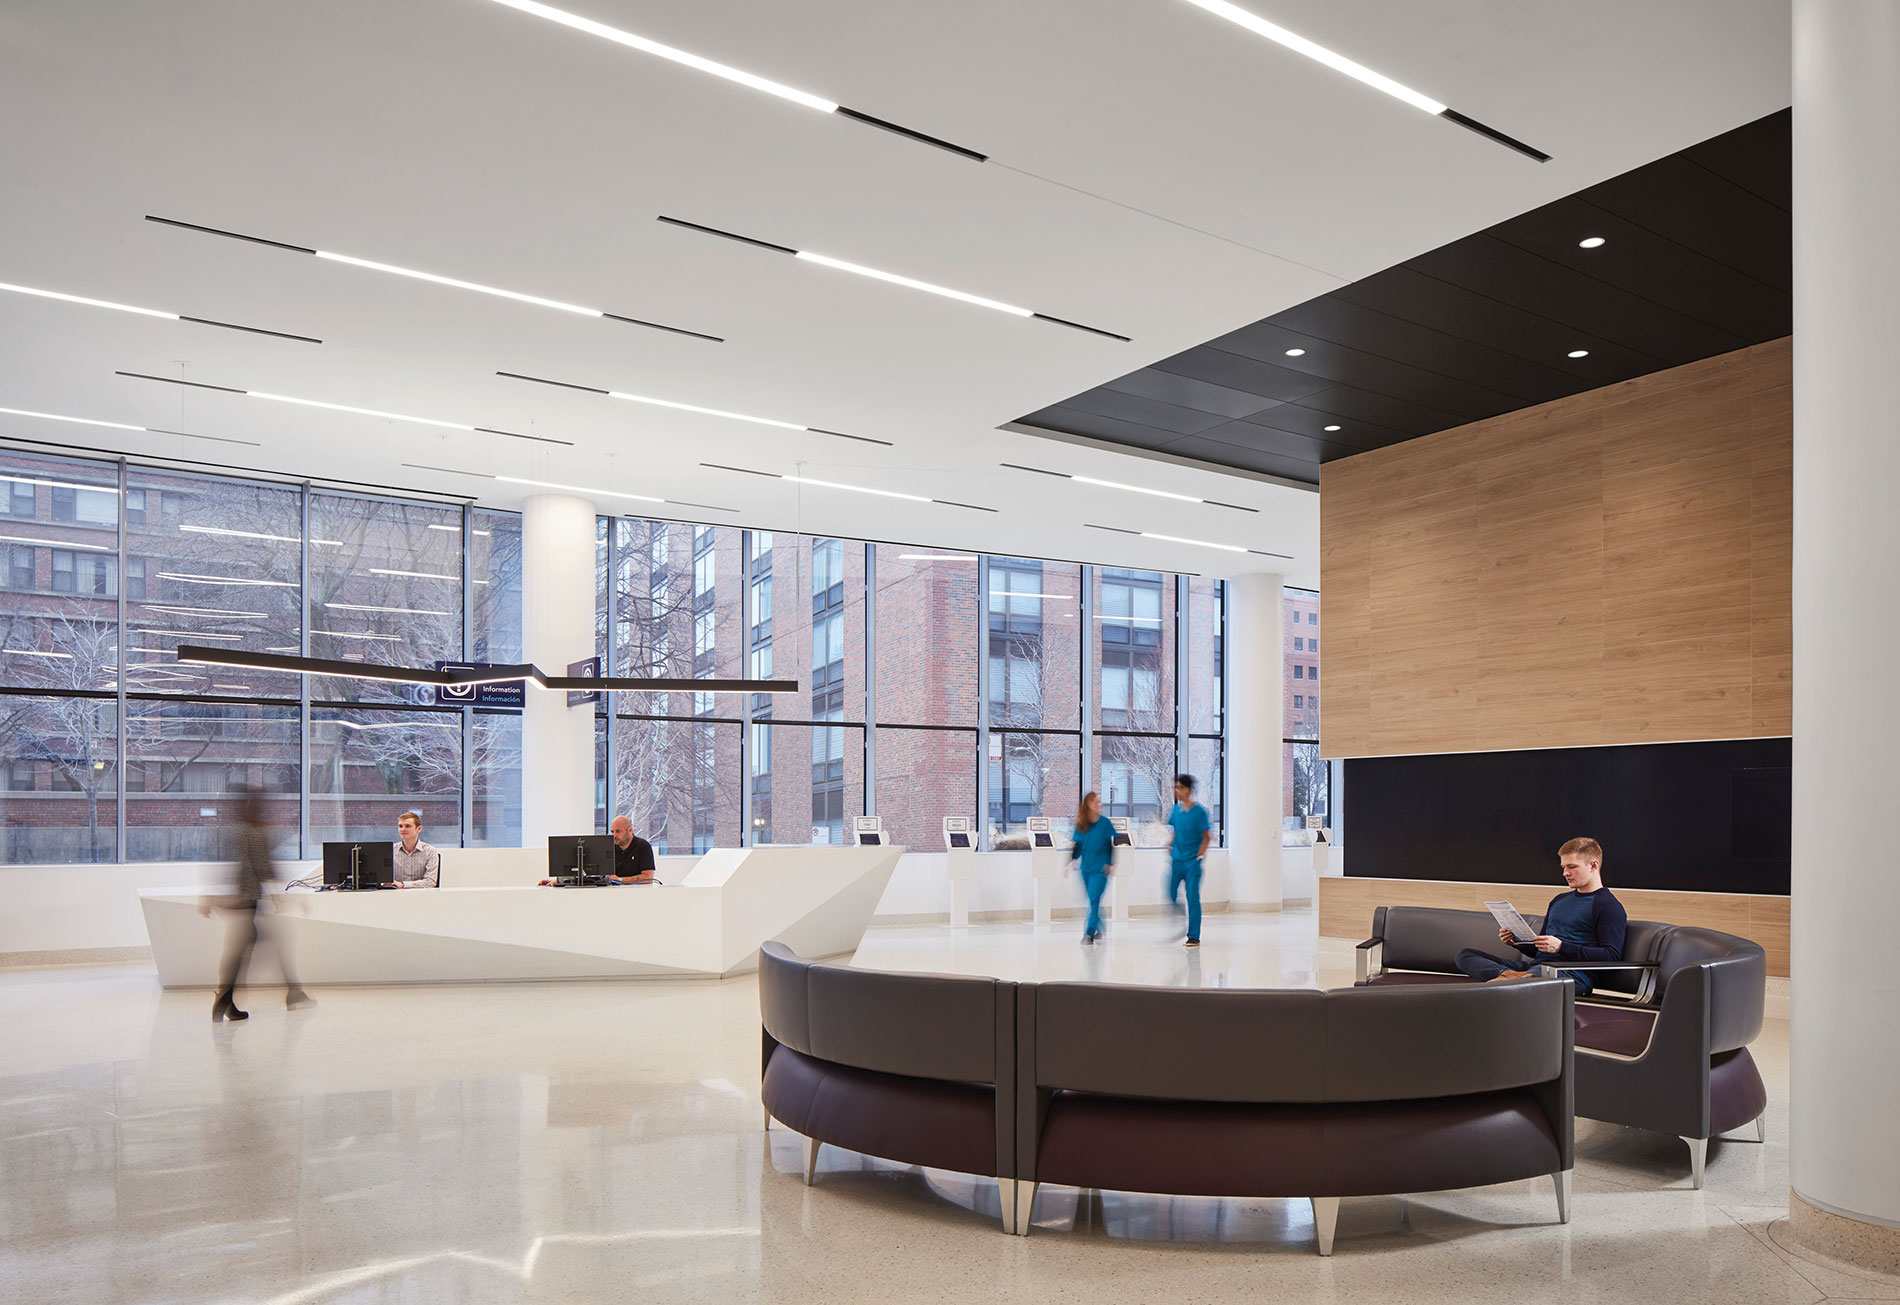 "Lighting design principles for healthy healthcare spaces applies to hospitals, specialty clinics, outpatient facilities, nursing homes and assisted living. ""Energy savings may have driven LED adoption in the healthcare sector, but from a design perspective, that's just the beginning,"" said Randy Guillot of Gensler, a global design and architecture firm."